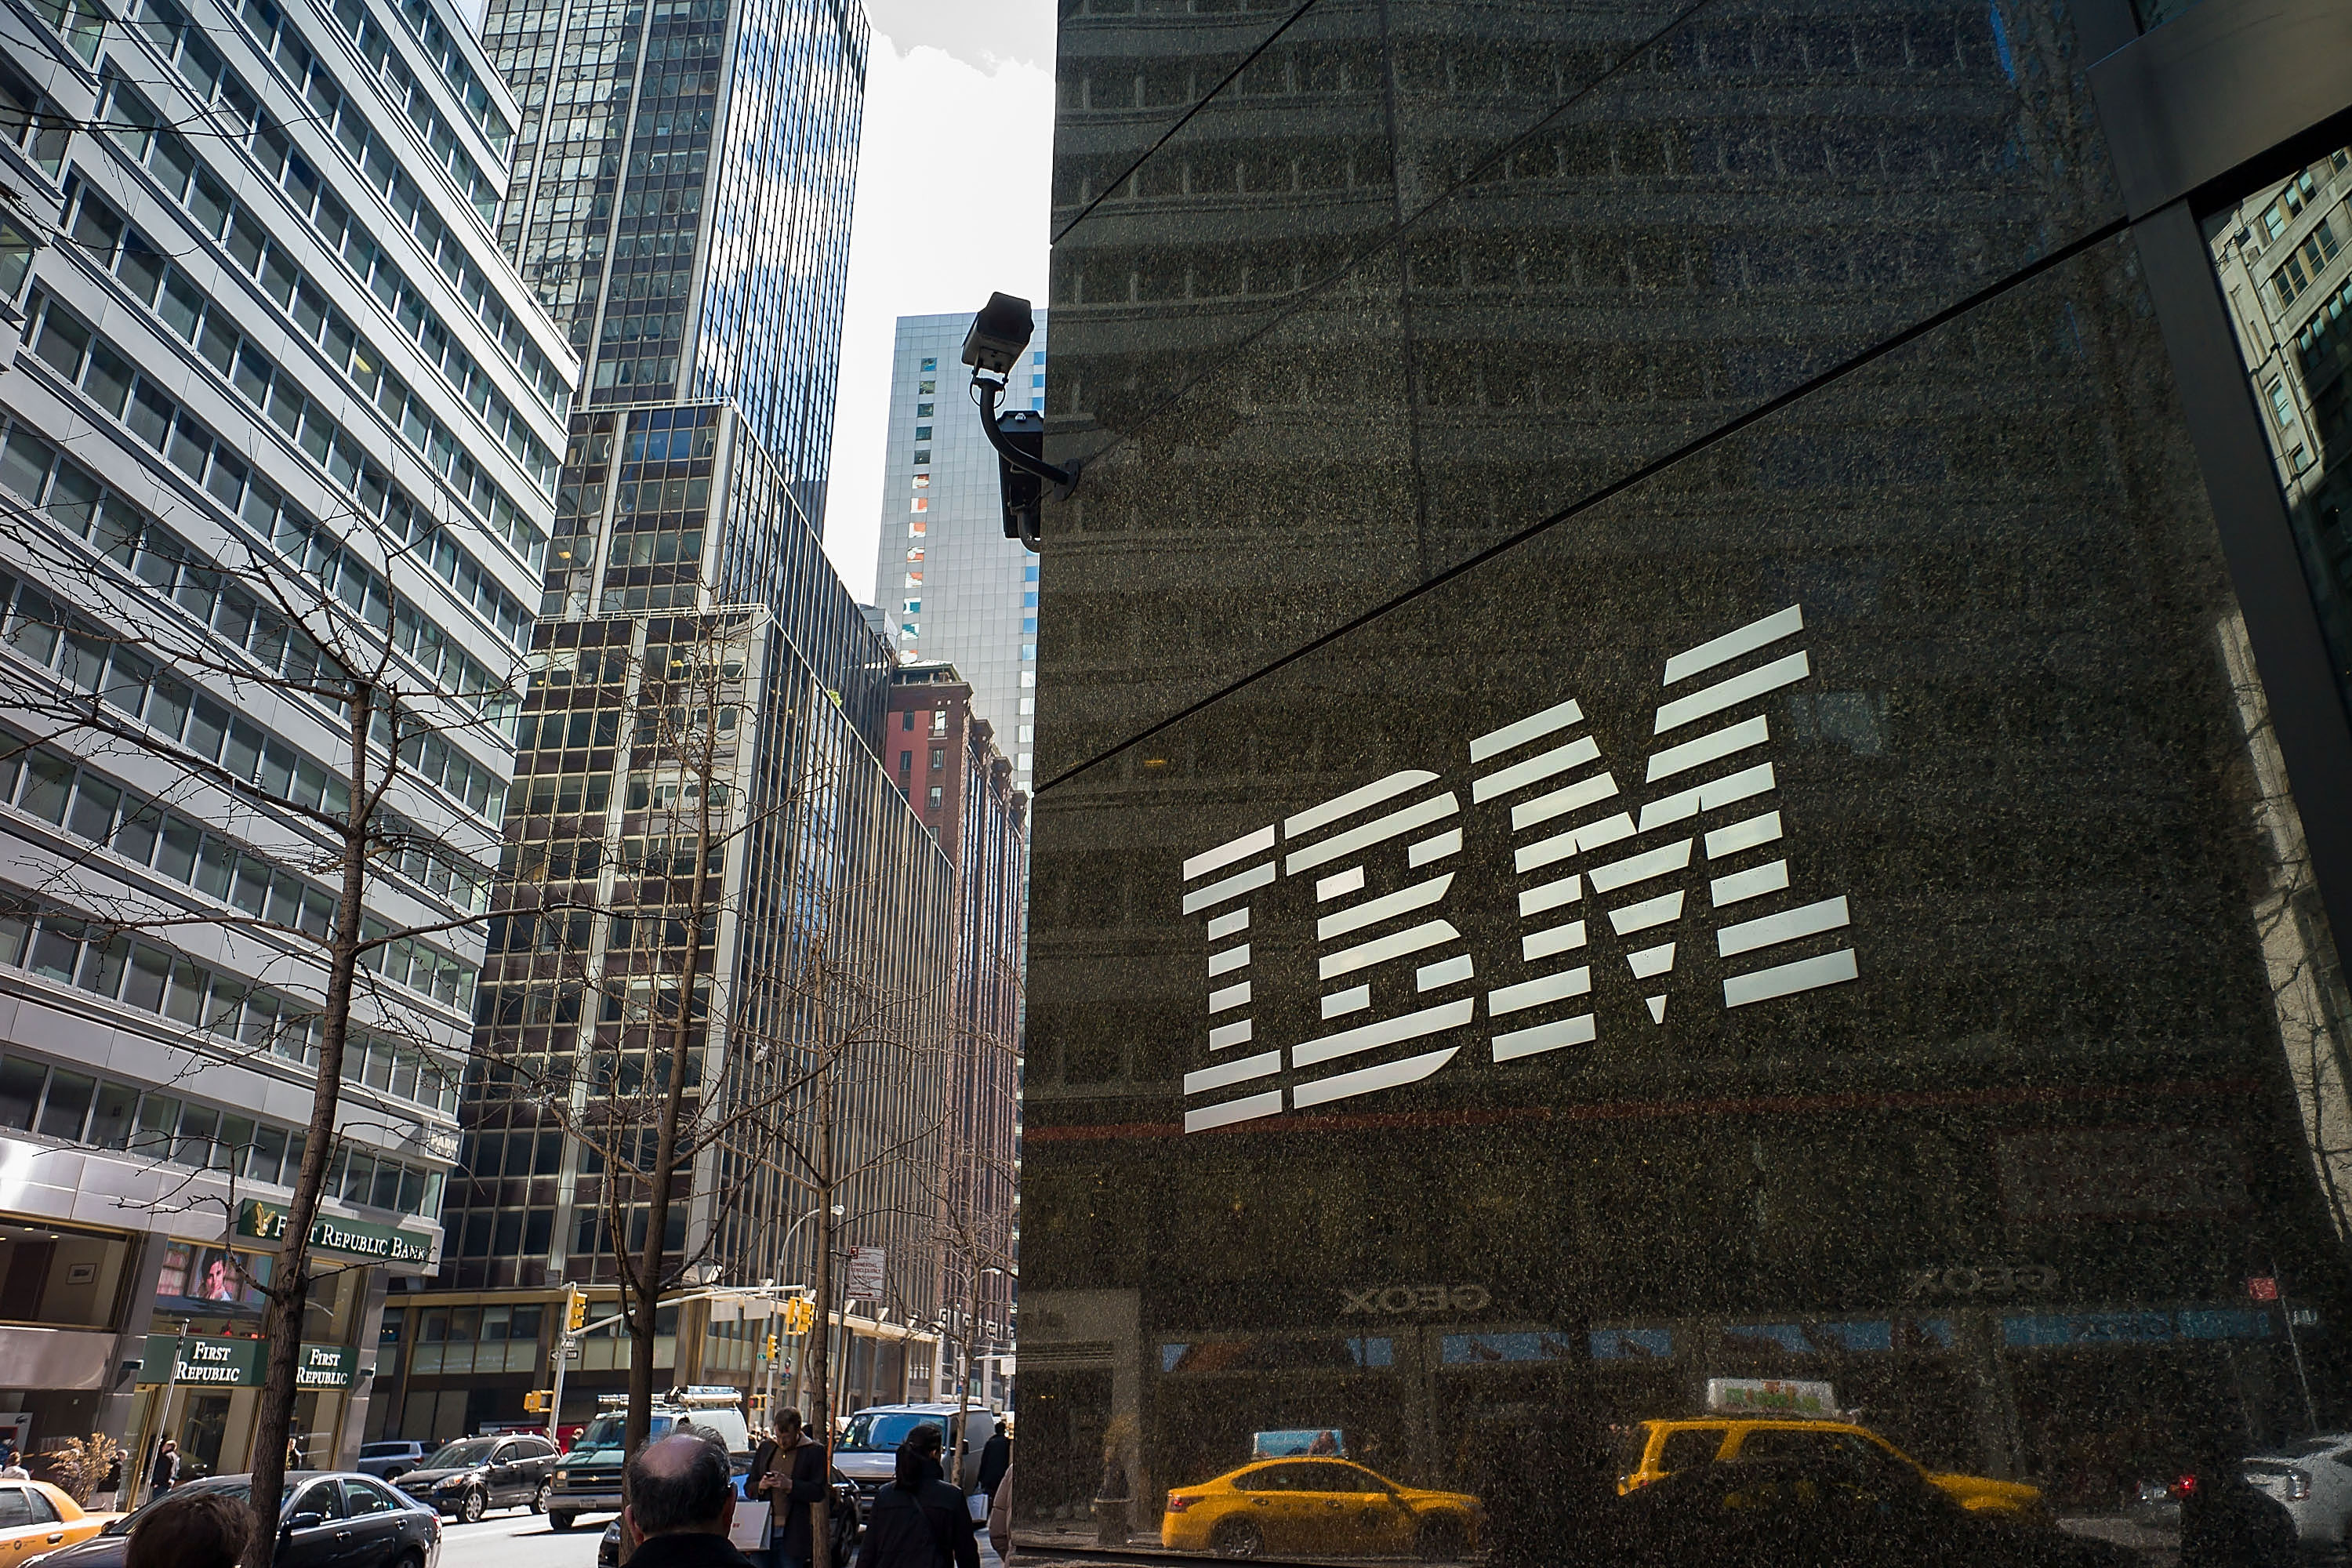 A view of the IBM office in New York.